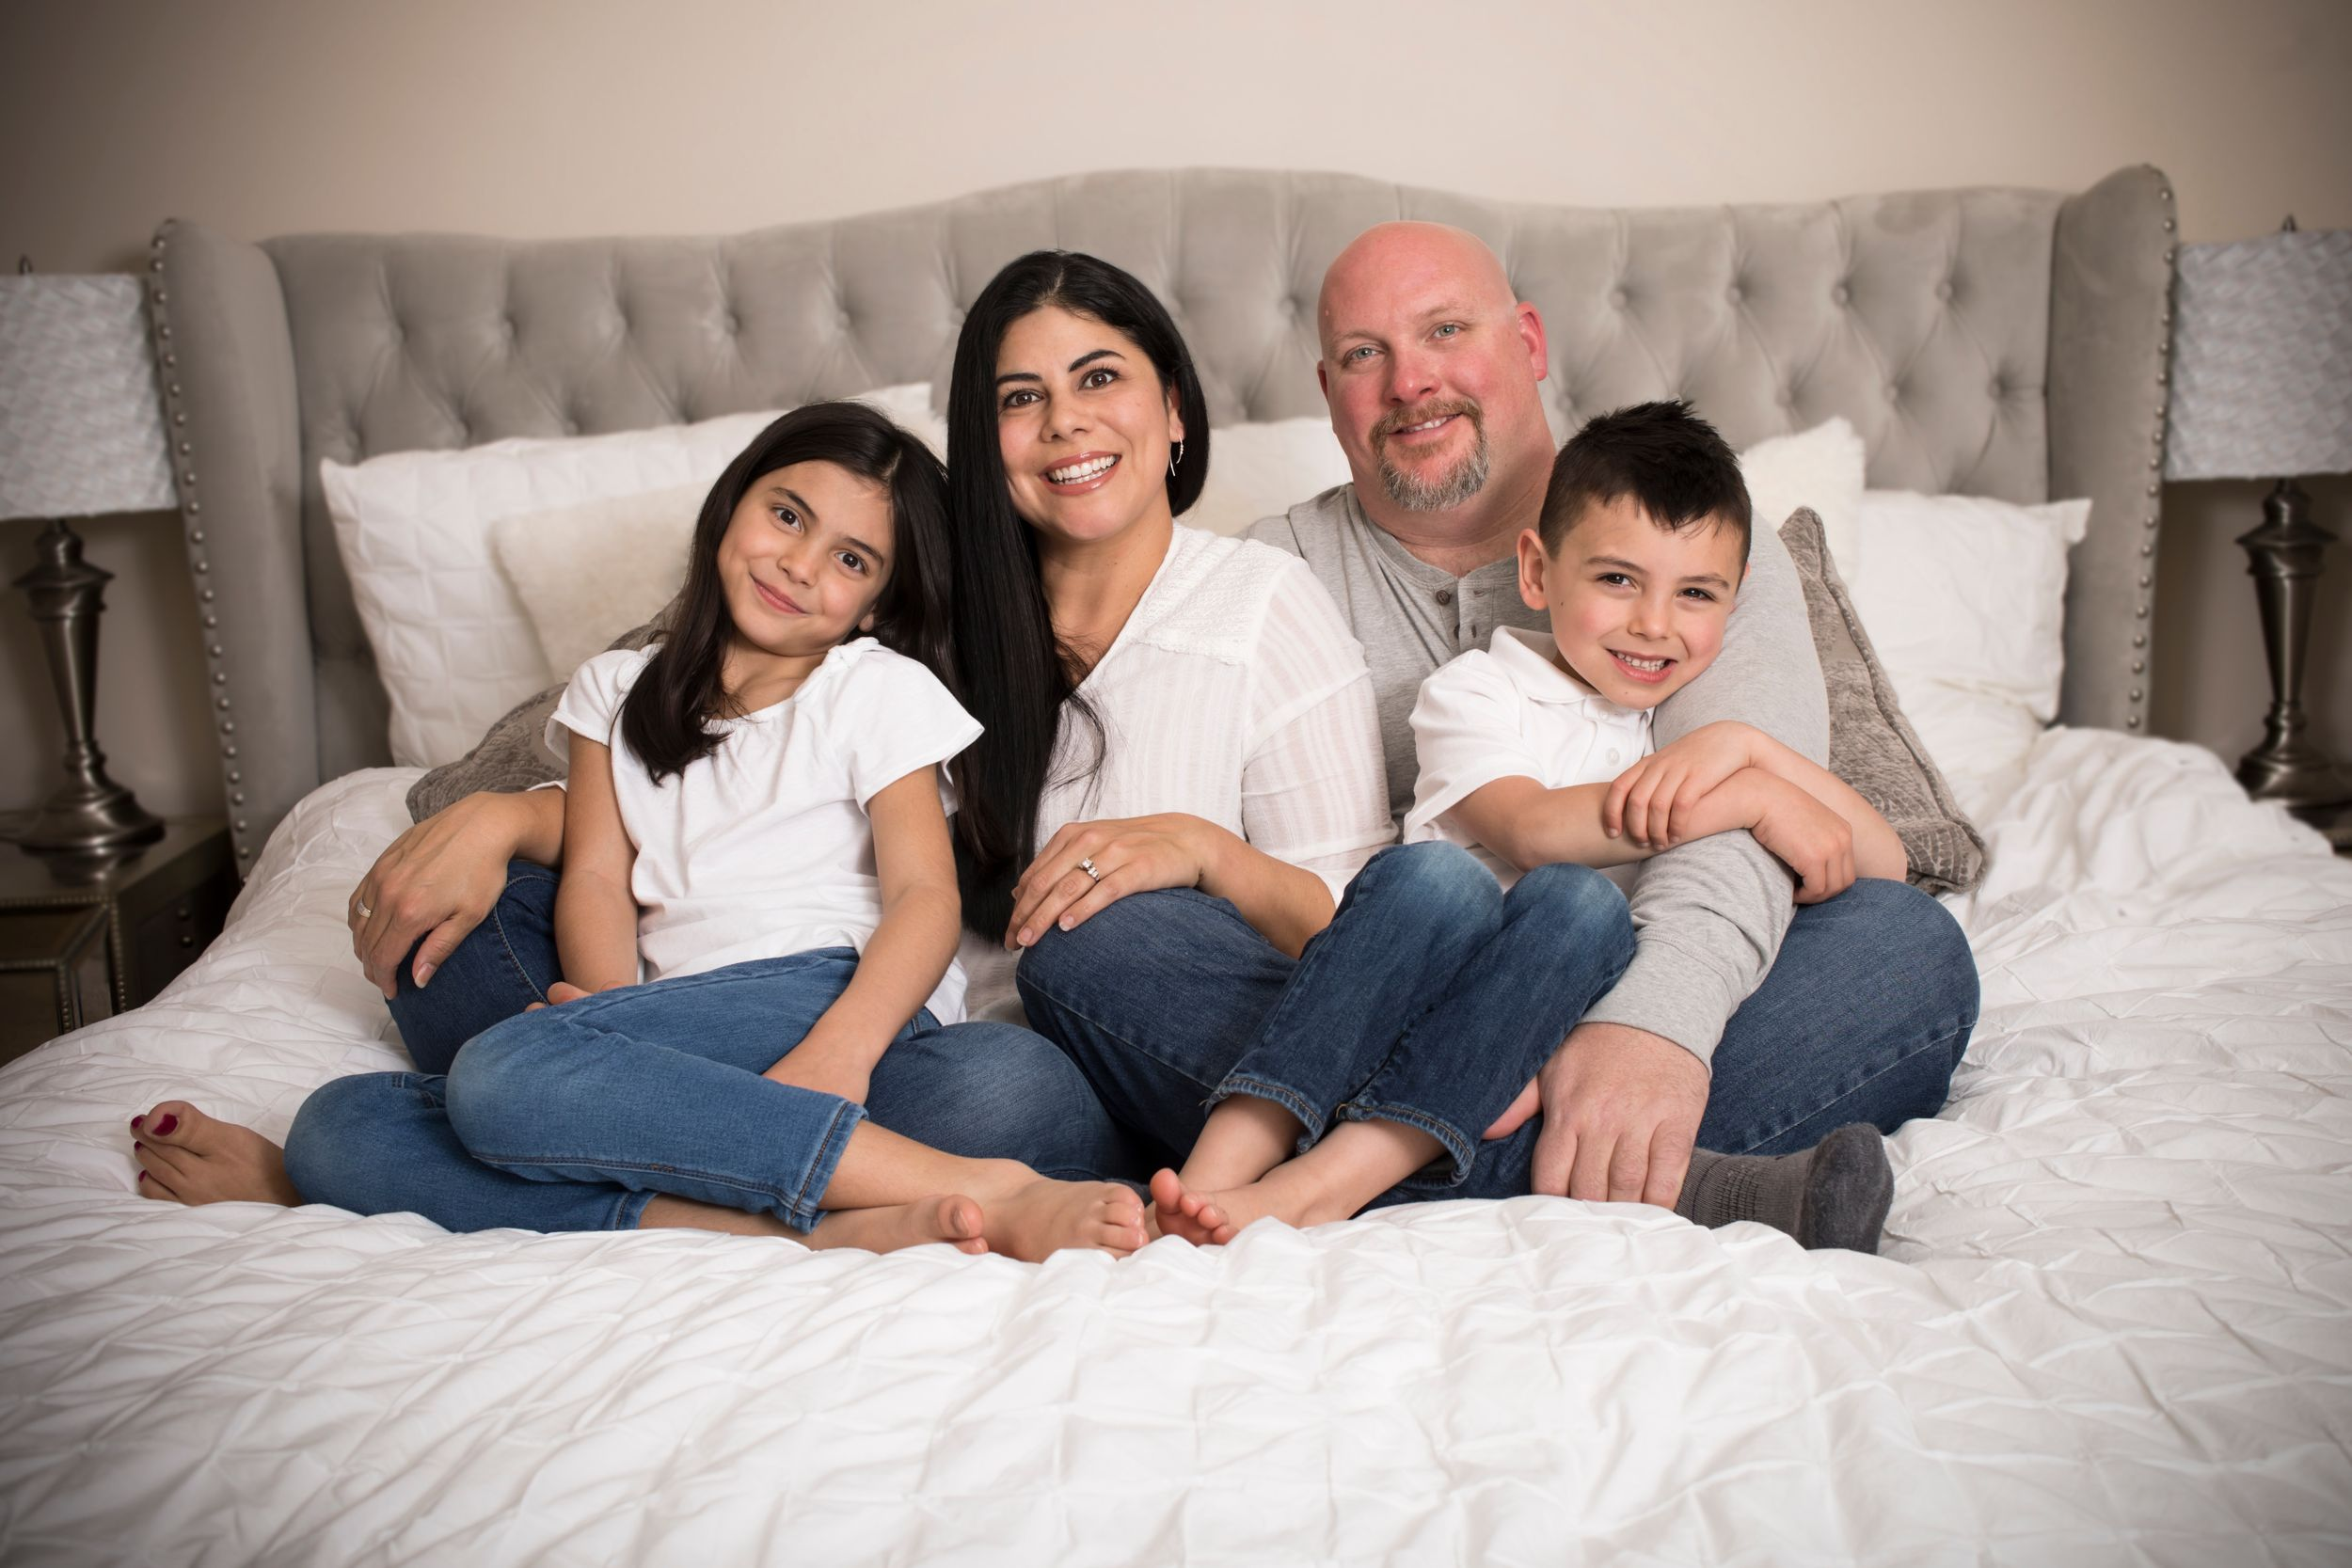 A happy family sitting on a big bed.